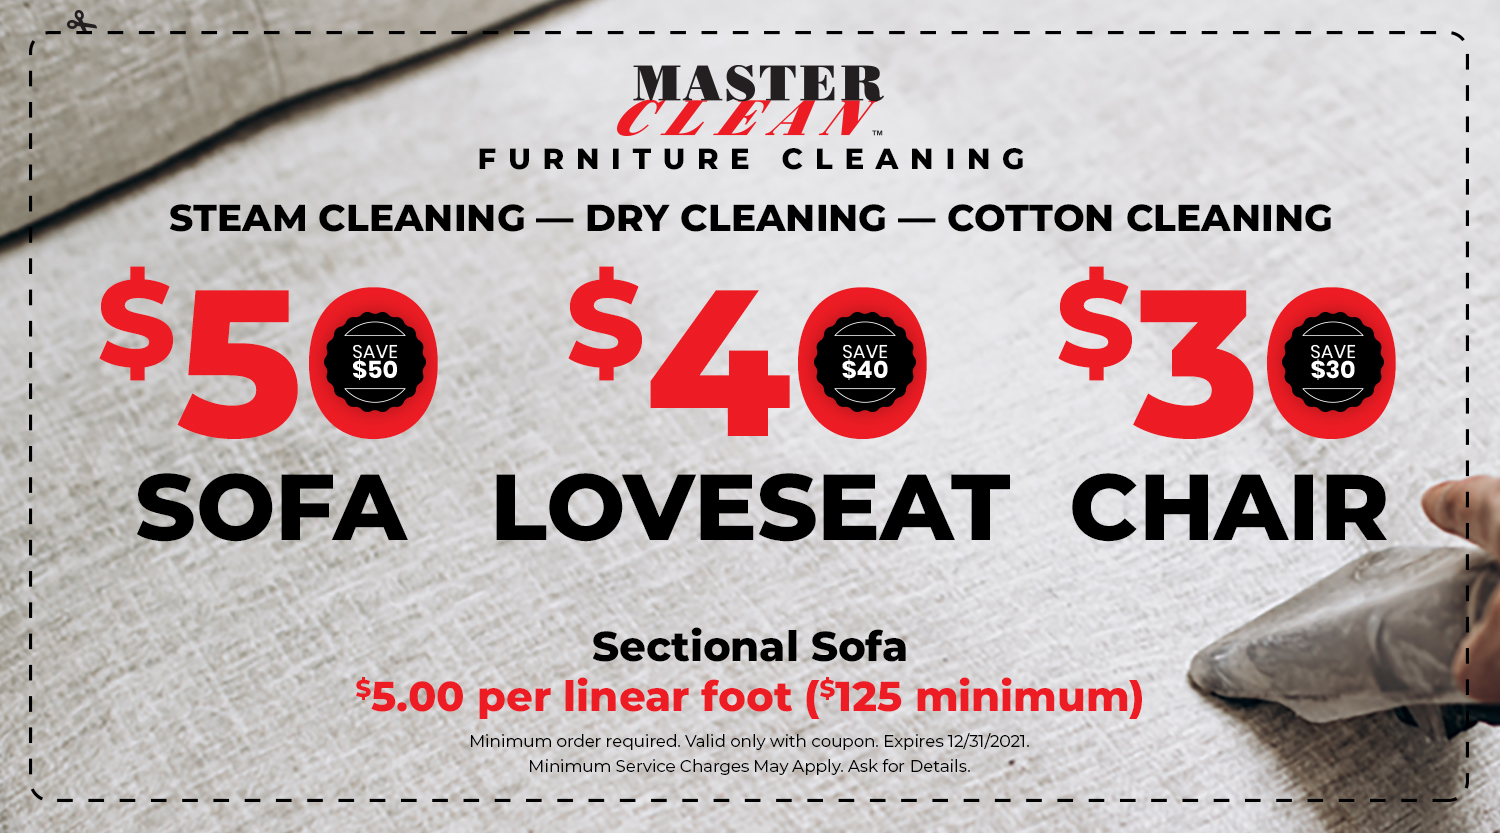 Furniture Cleaning Coupon